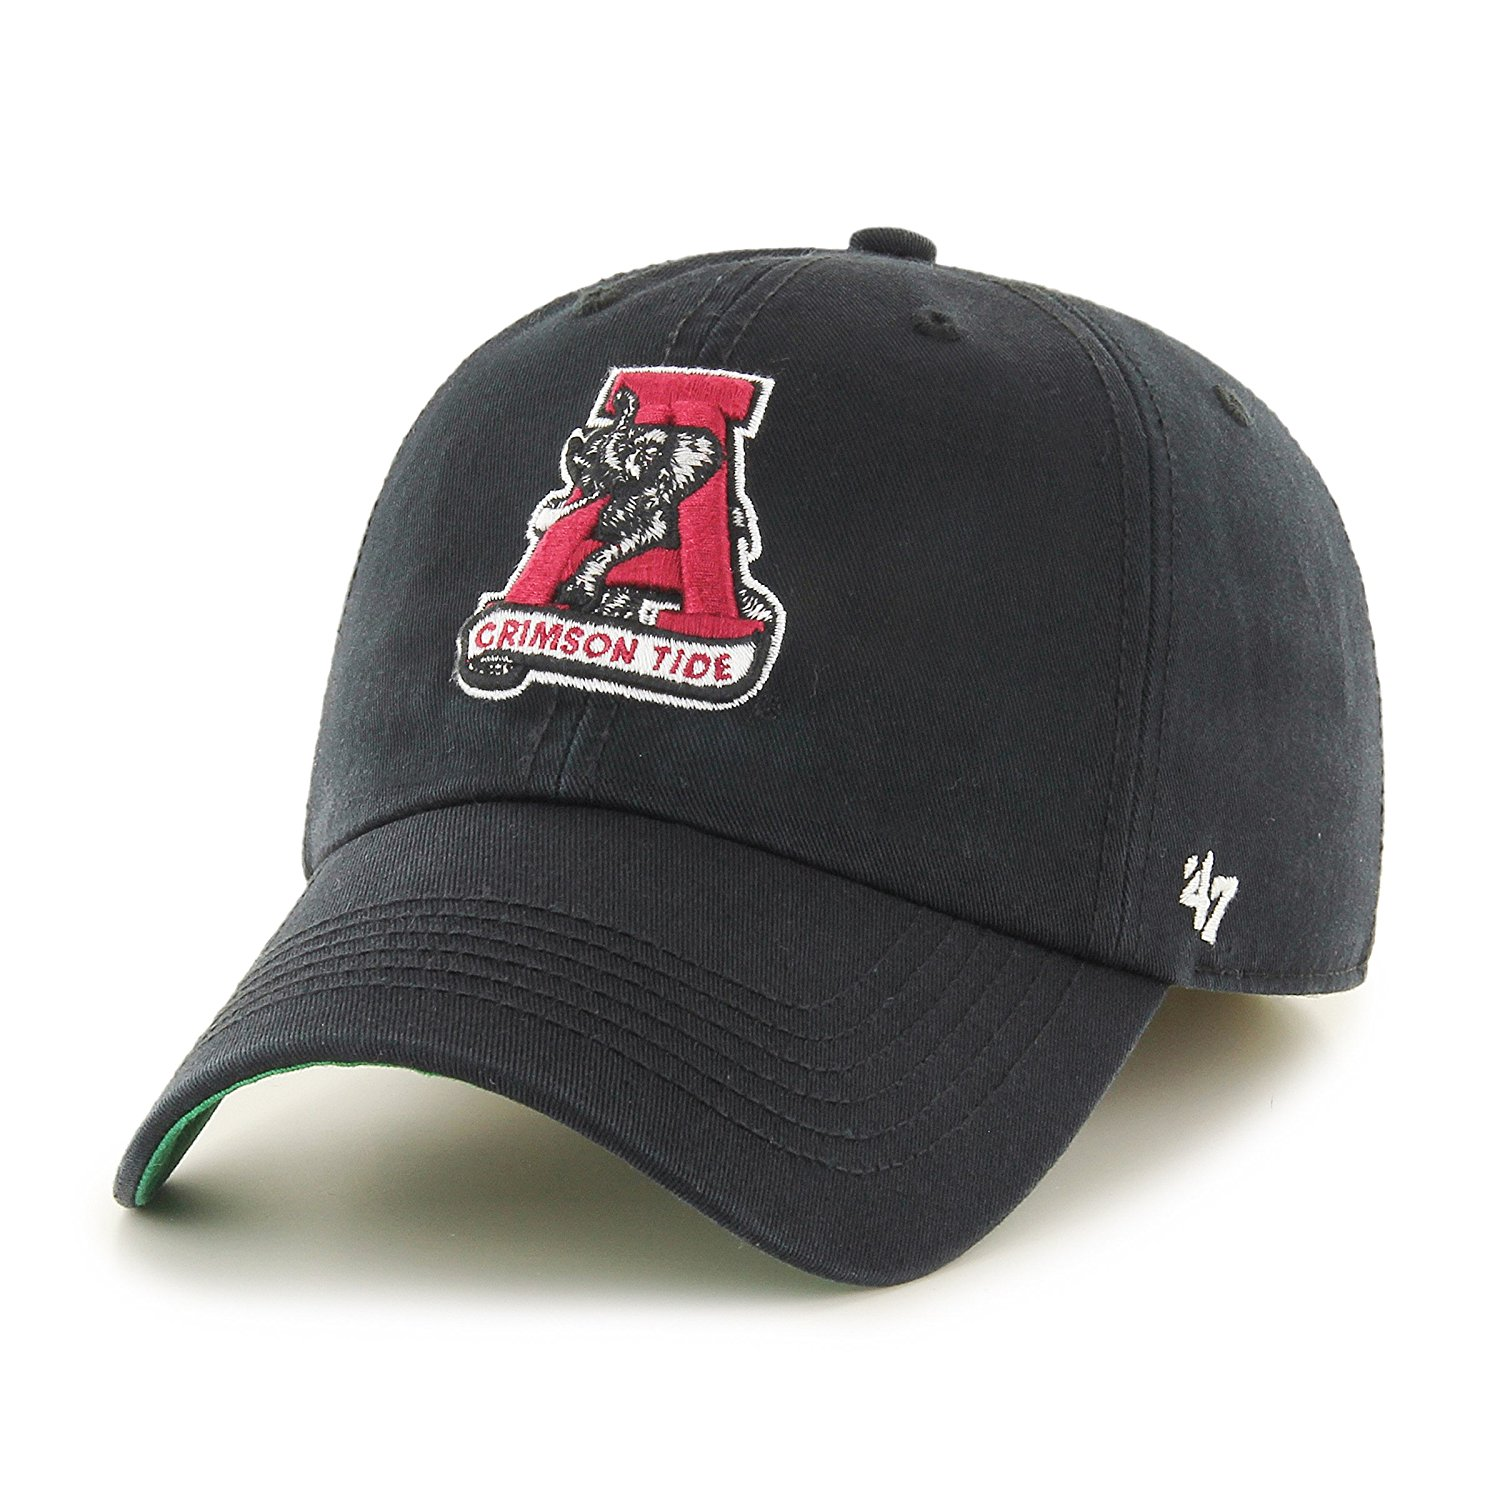 official photos 88696 d94ee Get Quotations · NCAA Alabama Crimson Tide Franchise Fitted Hat, Medium,  Black